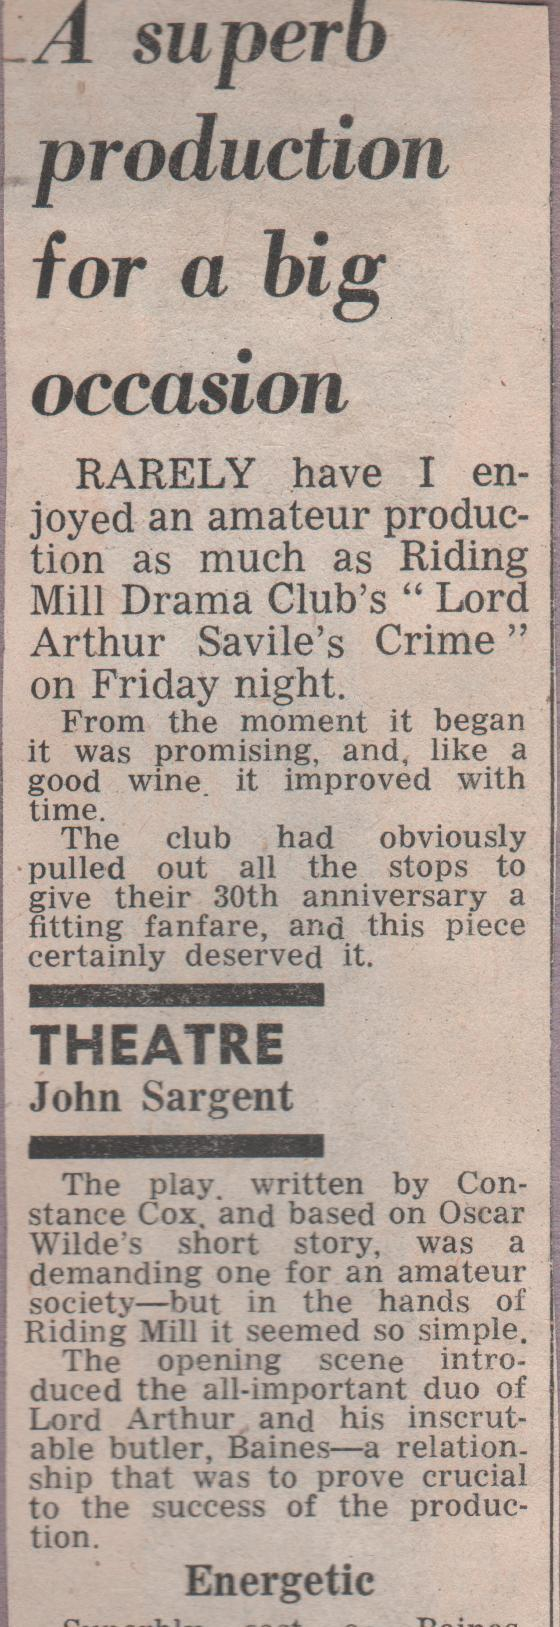 1980, Riding Mill Drama Club, Lord Arthu